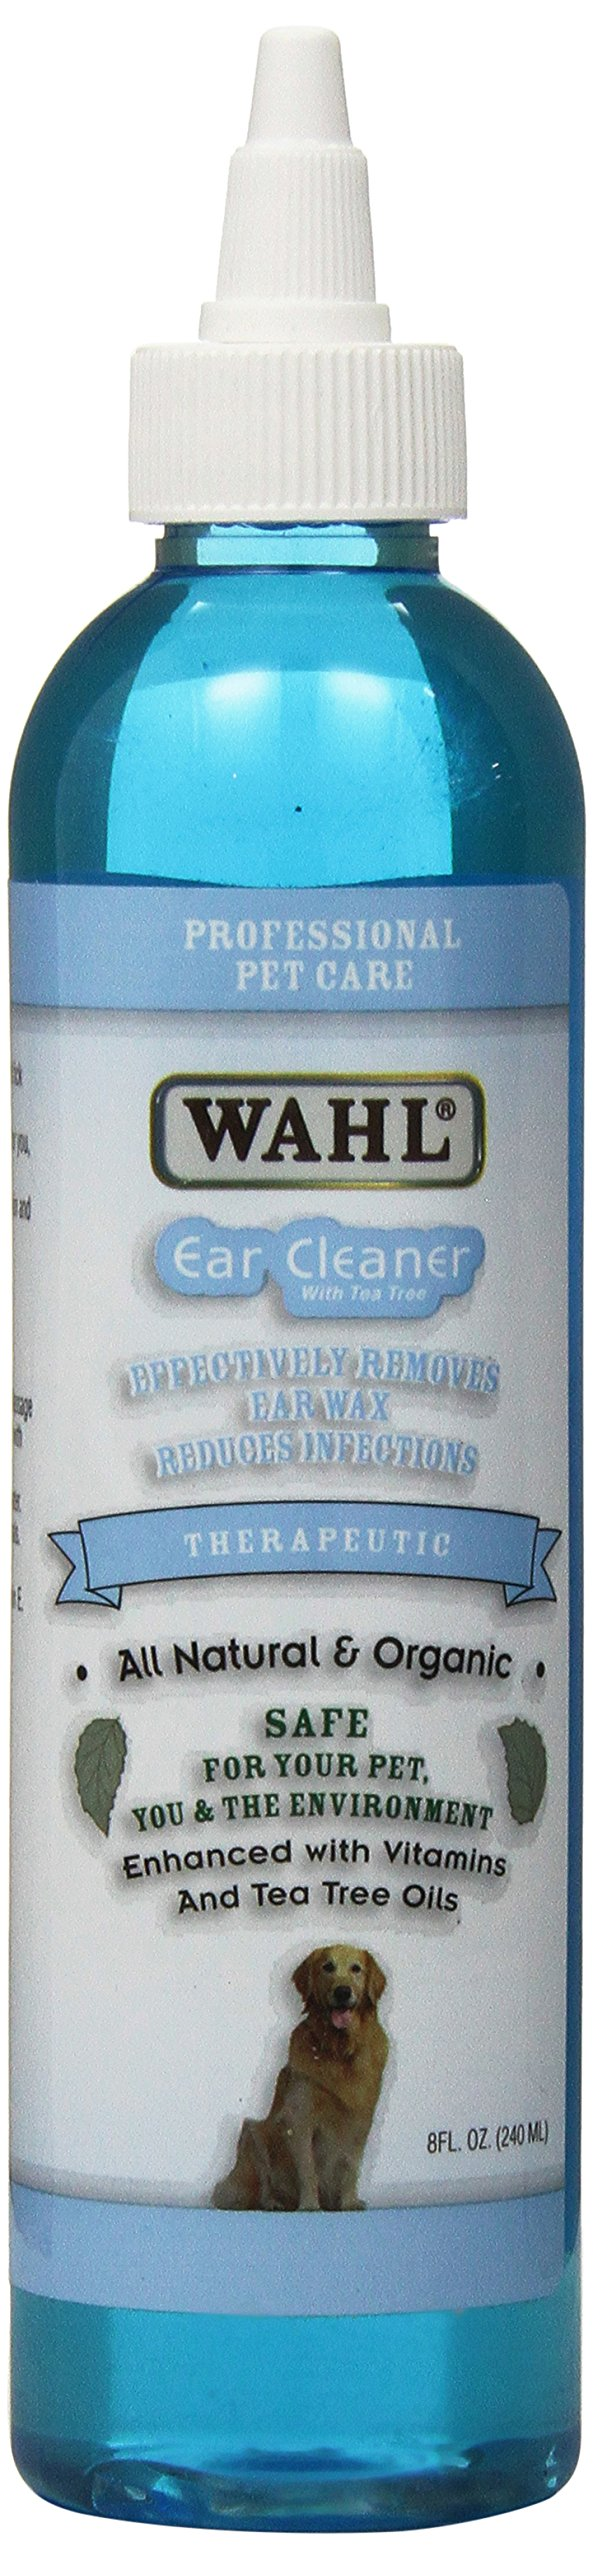 Wahl 800103-200 Ear Cleaner (8 oz.) Professional Pet Care by Professional Animal